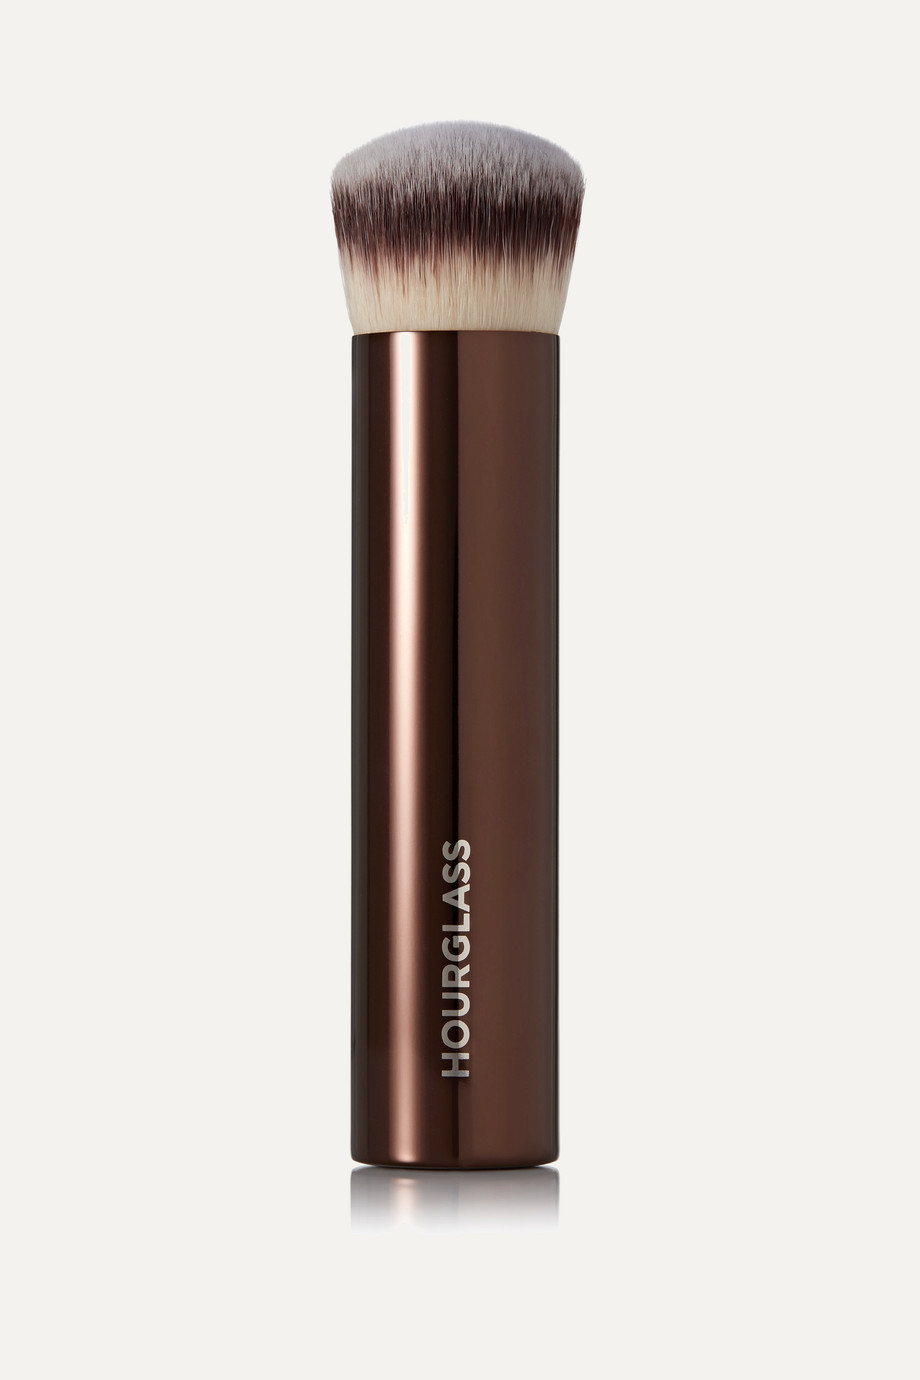 HOURGLASS Vanish Seamless Finish Foundation Brush